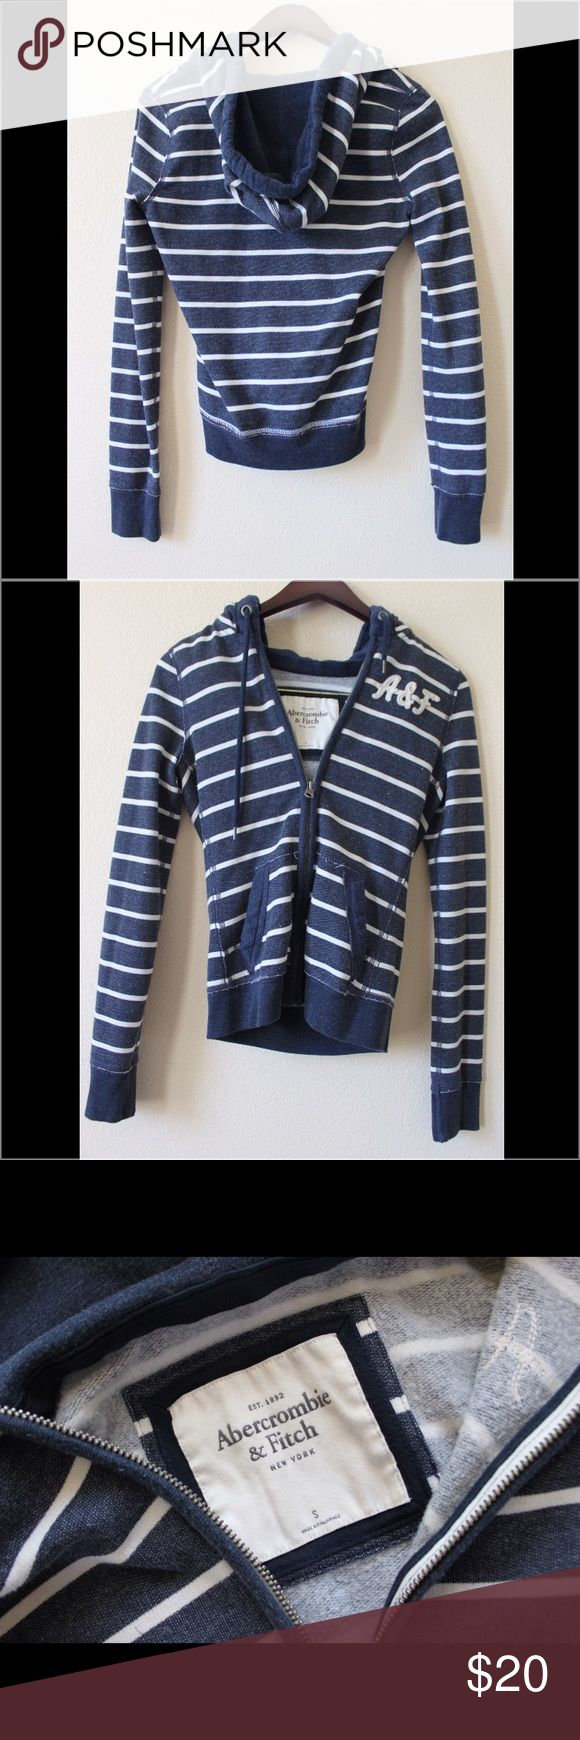 Abercrombie and Fitch jacket Barely worn, great condition and very soft! Jackets & Coats